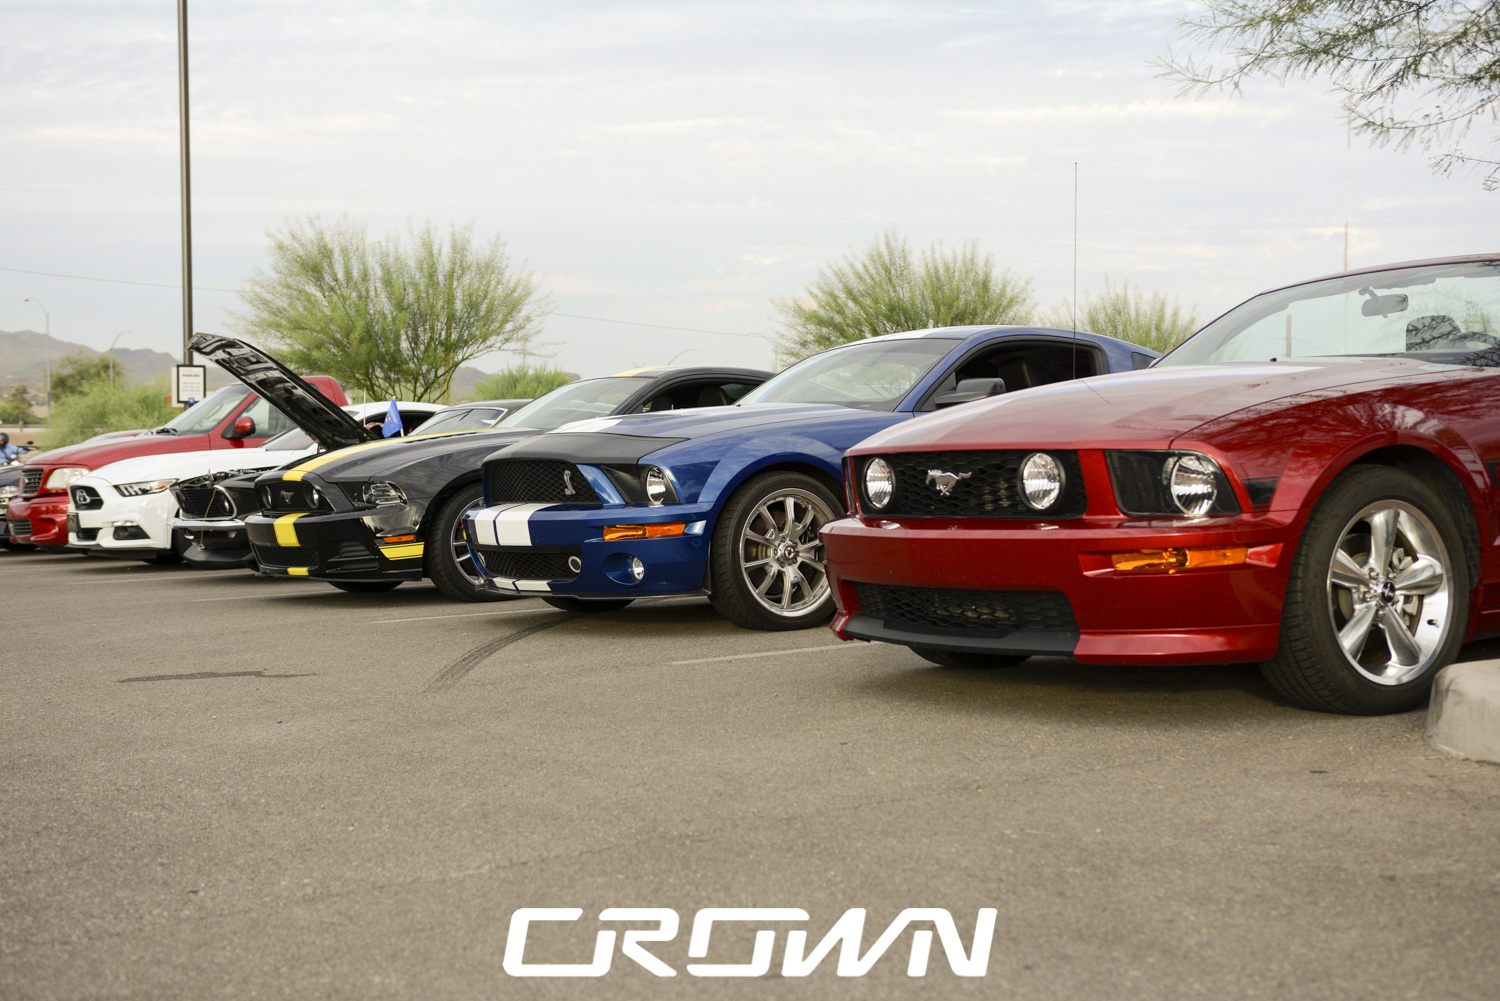 Southern Arizona Mustang Club at topgolf Tucson